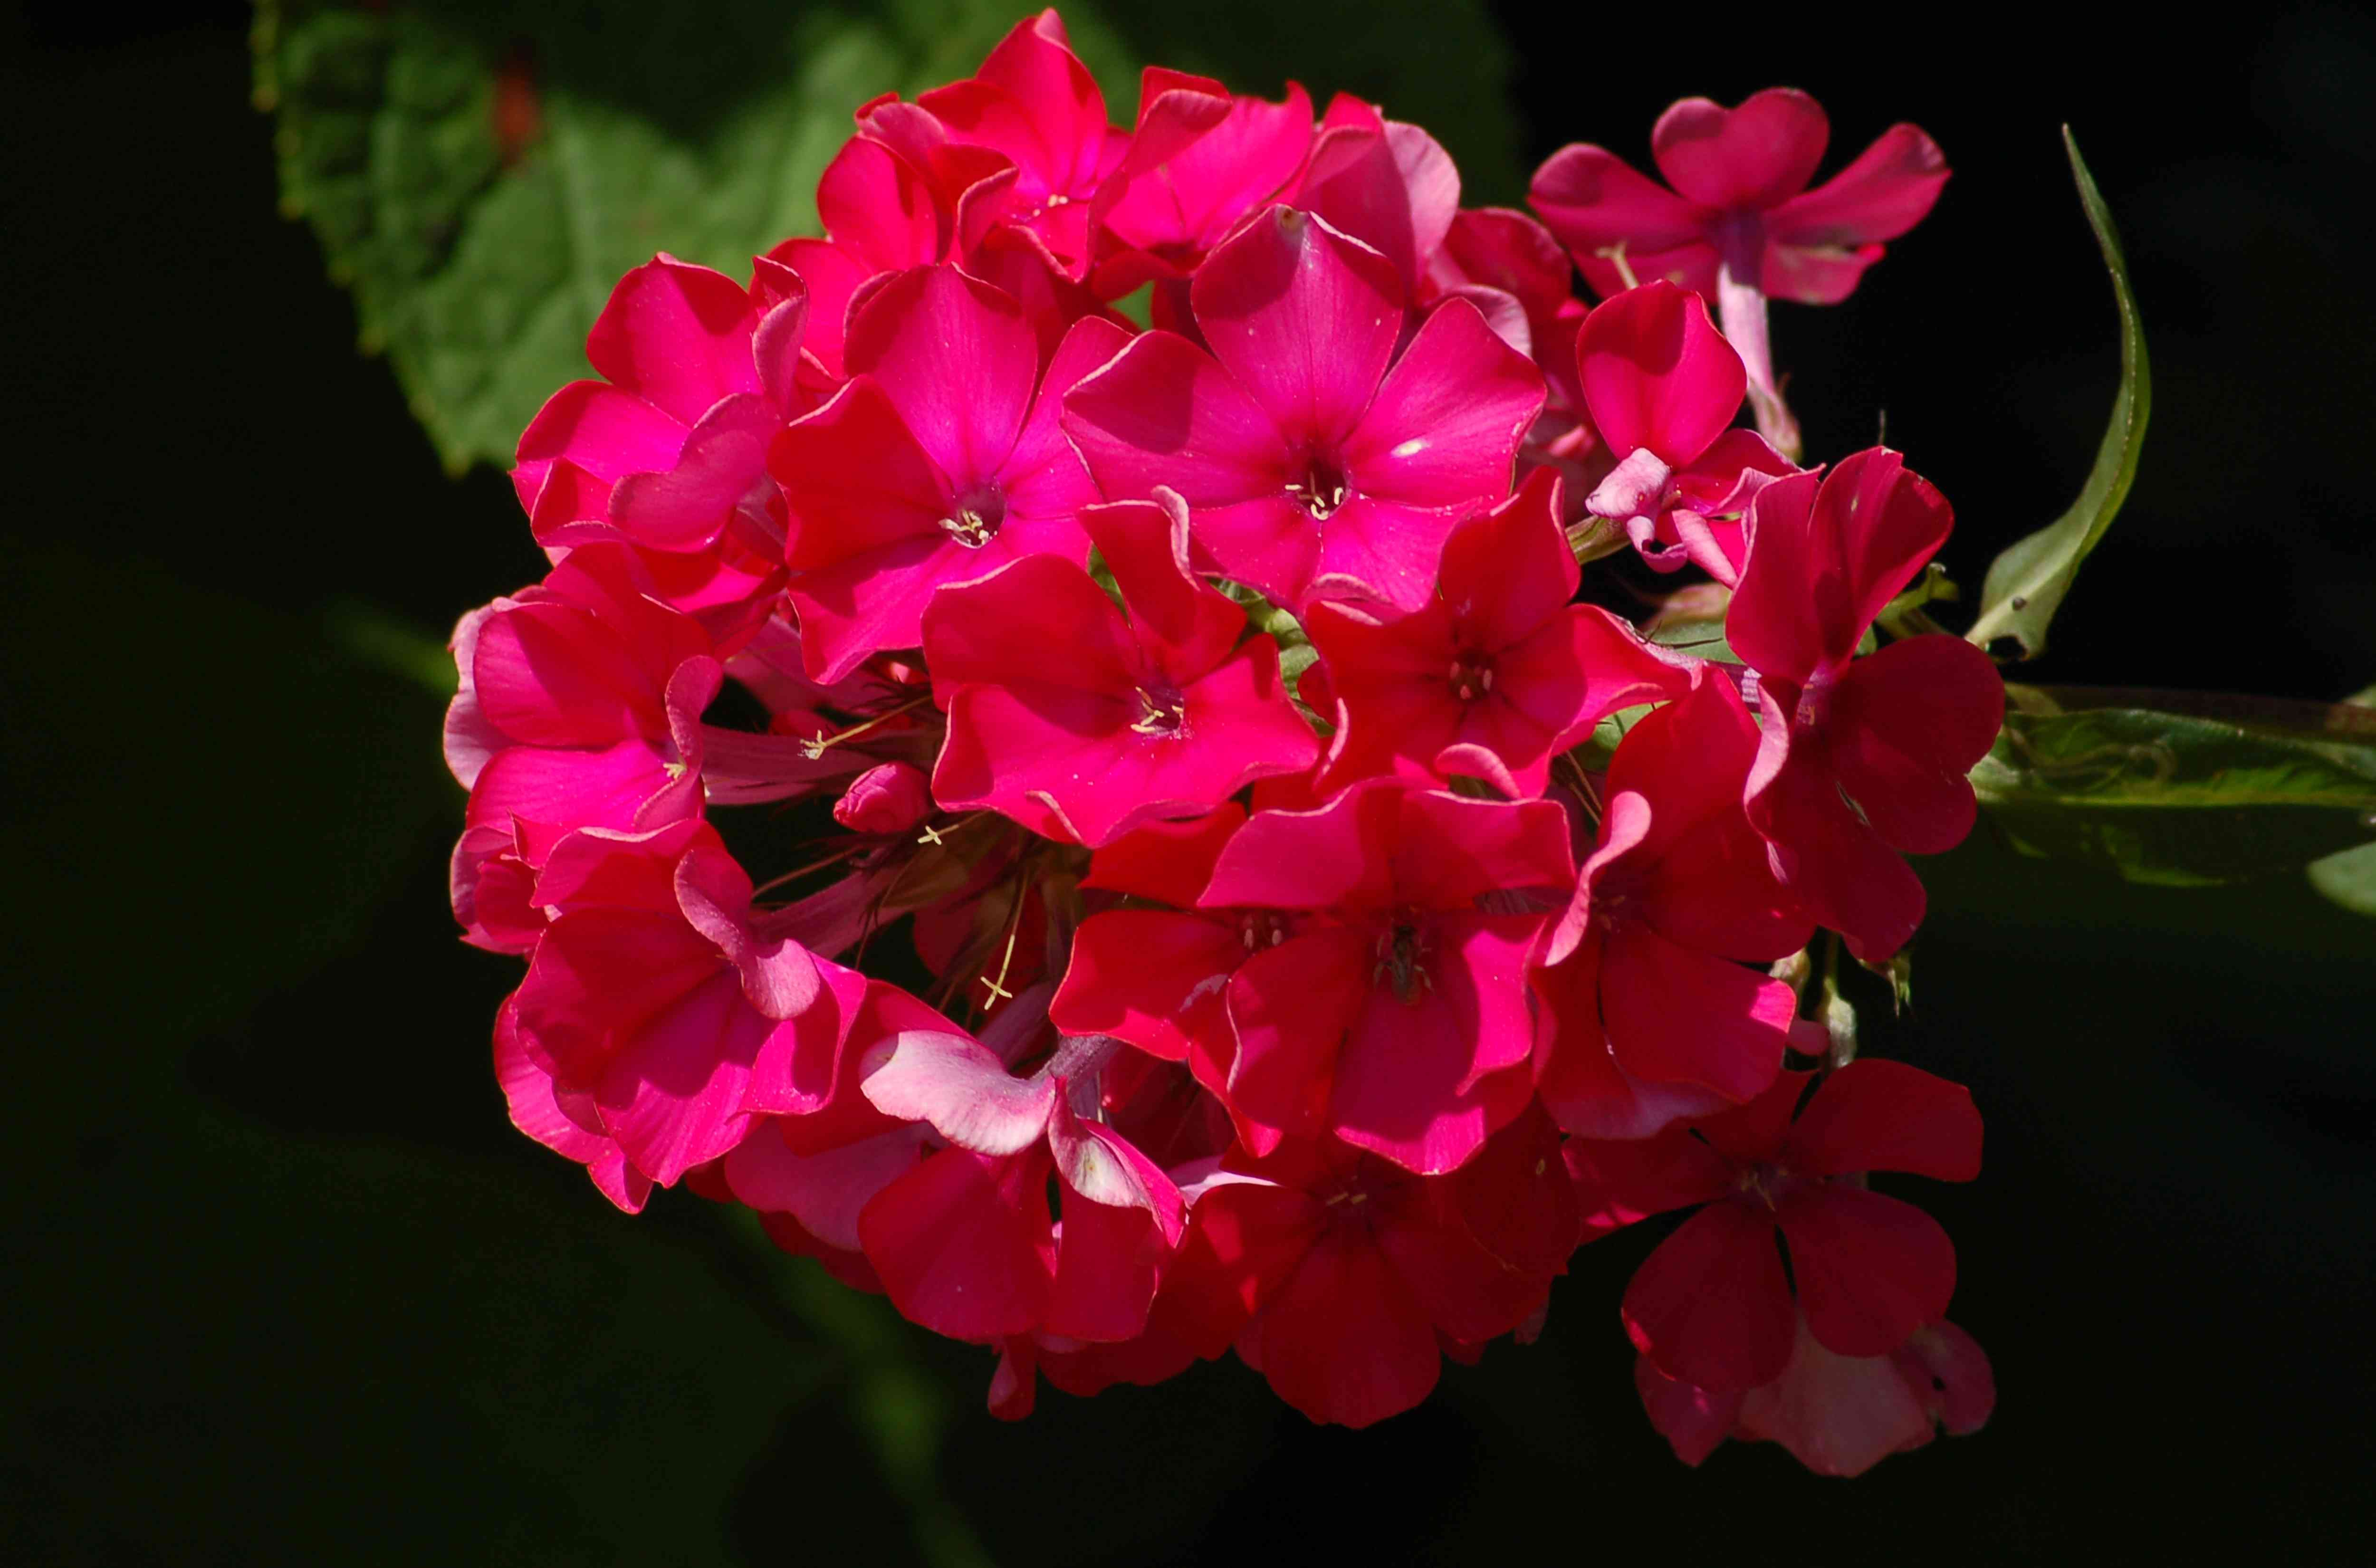 Phlox paniculata 'Starfire' with its flower head of deep pink blooms.